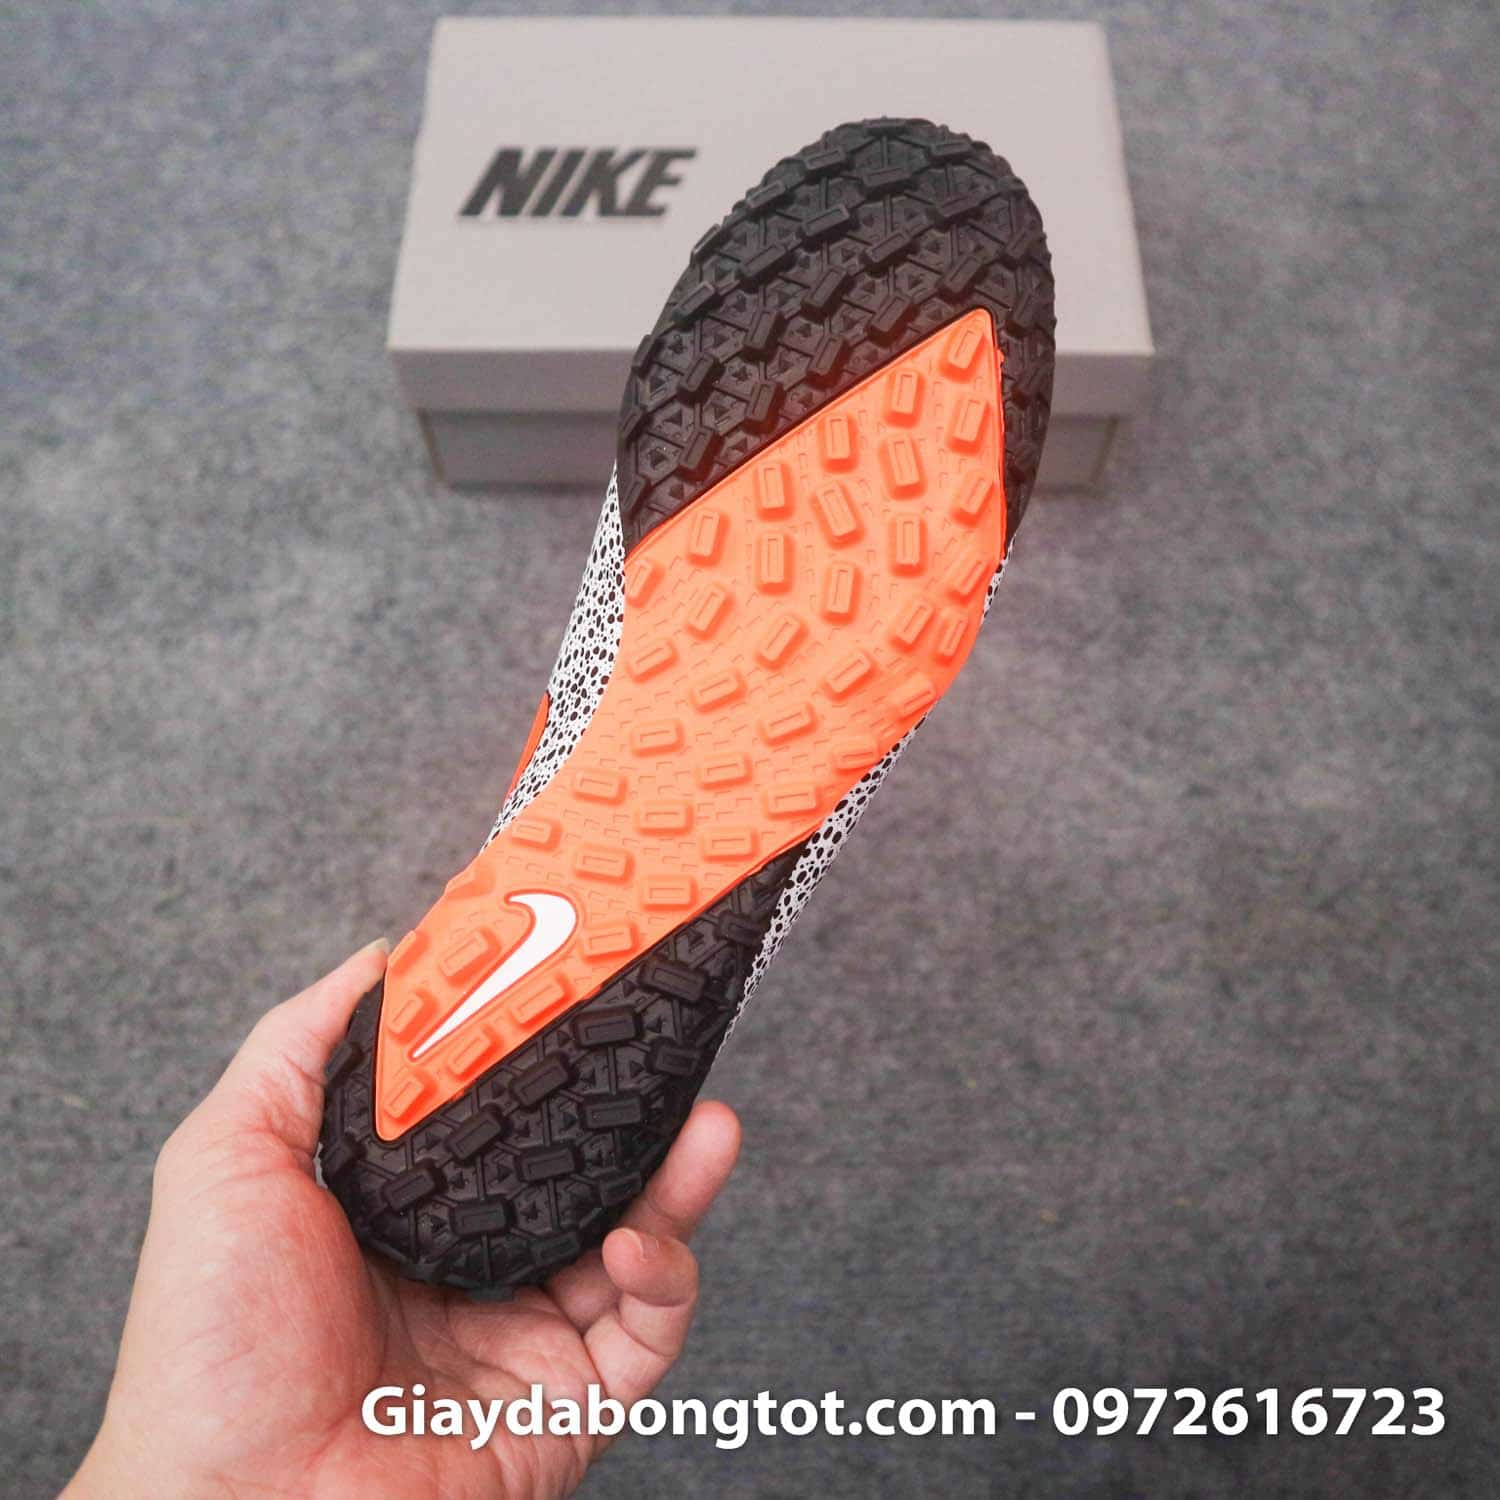 Giay da banh cao co nike mercurial superfly 7 elite tf cr7 safari trang den (9)